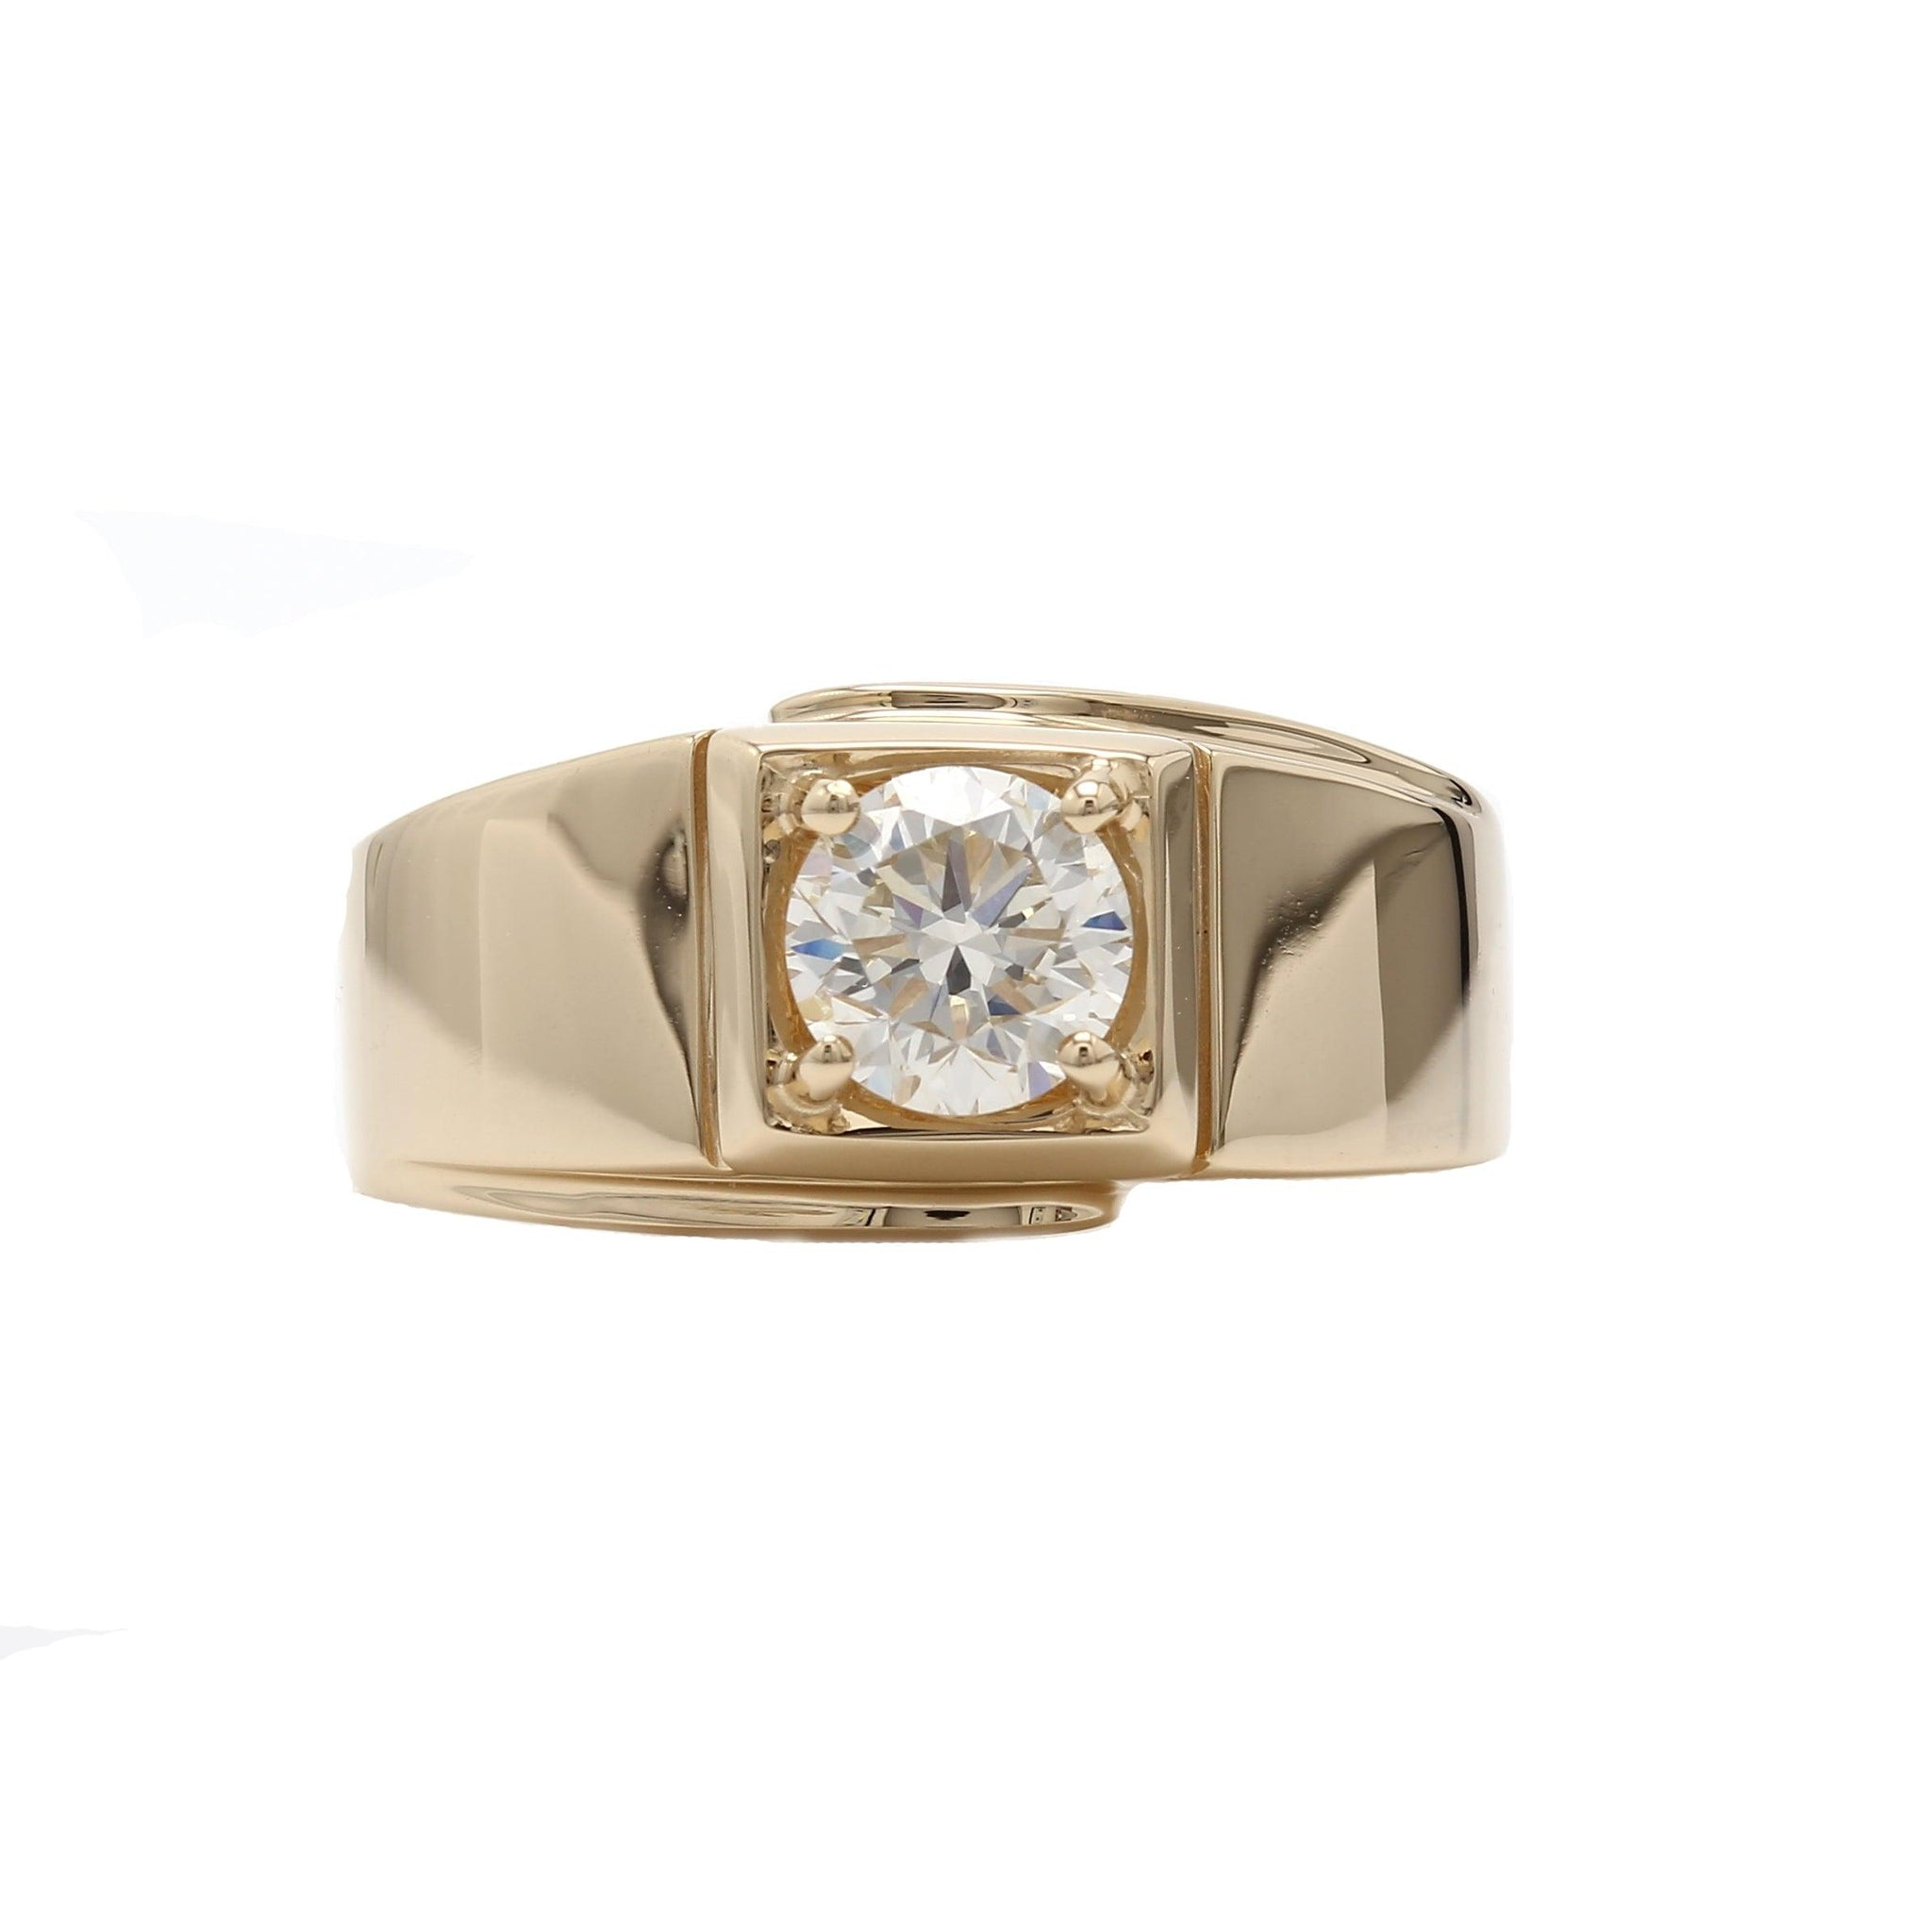 1.00 Ct. Round Lab-Grown Diamond Men's Ring 14K Yellow Gold